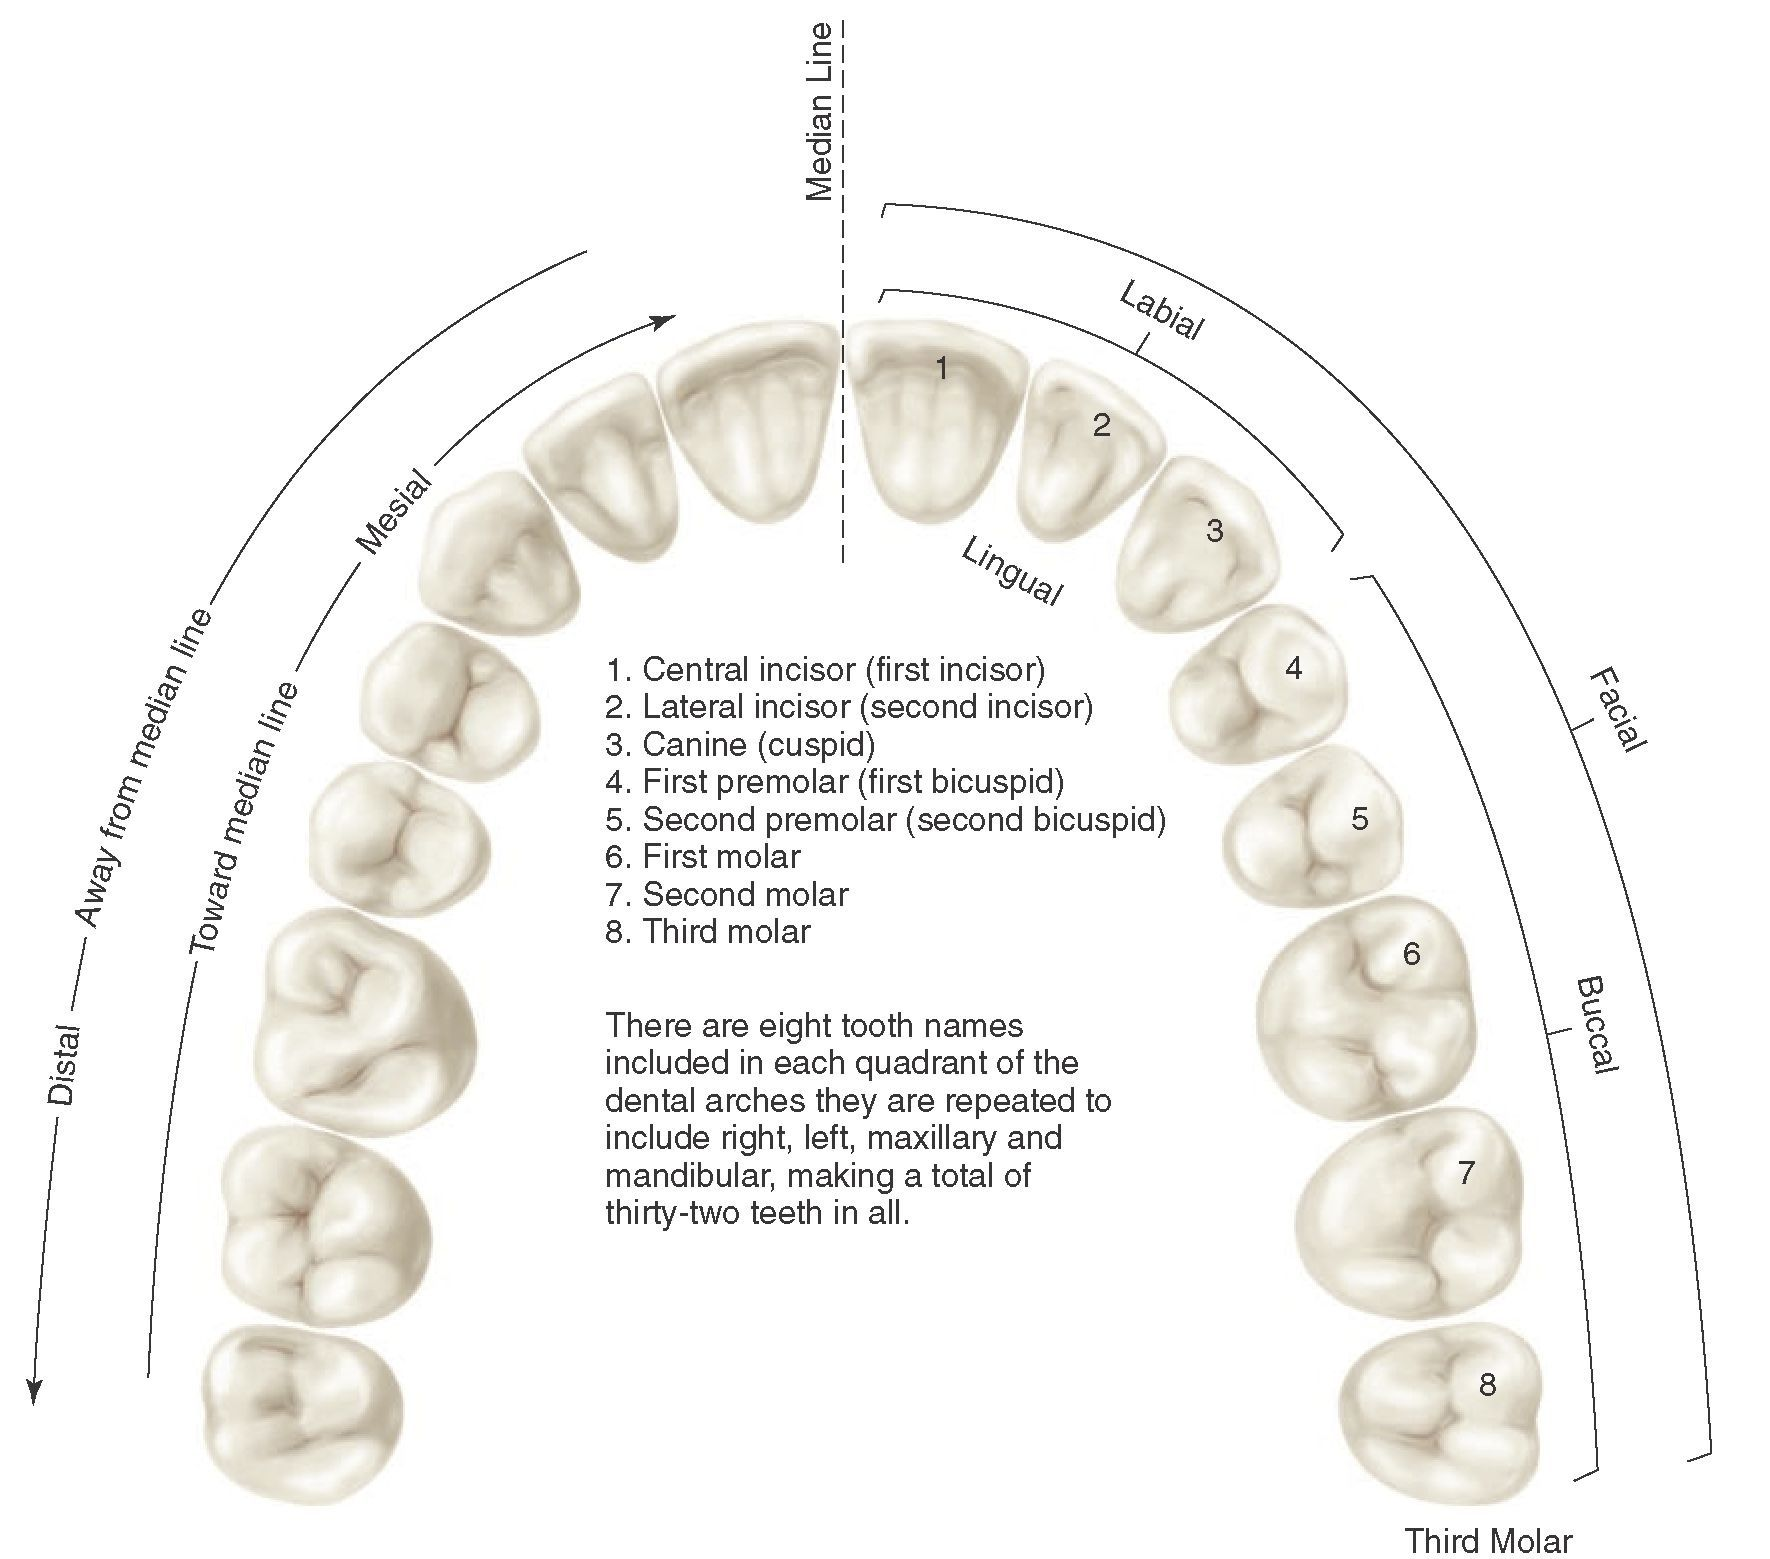 Application Of Nomenclature Tooth Numbers L1 To L8